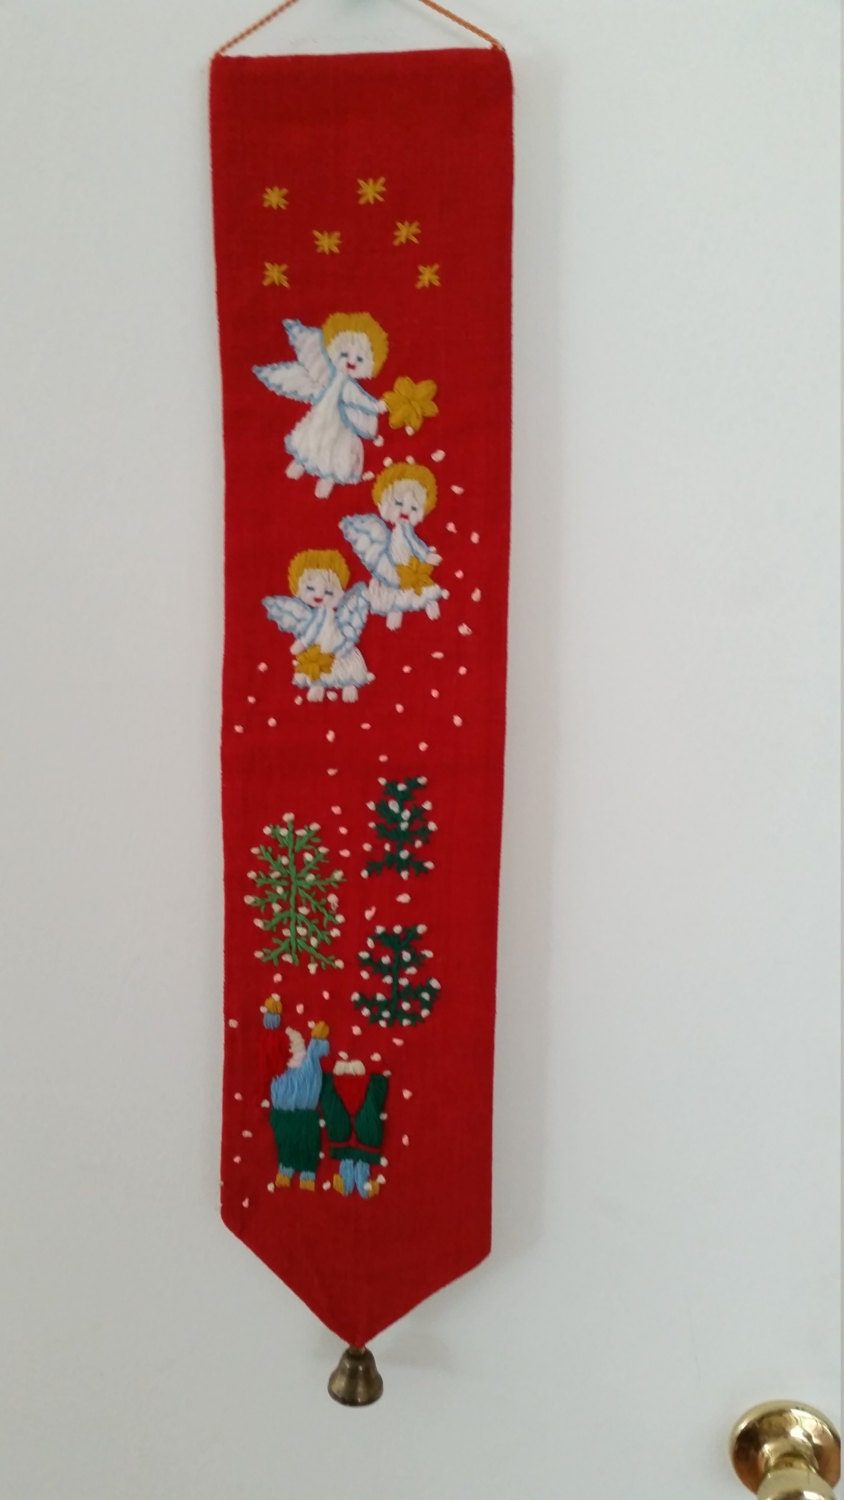 Vintage Christmas Wall Decor : Vintage hand stitched red christmas bell pull wall decor with